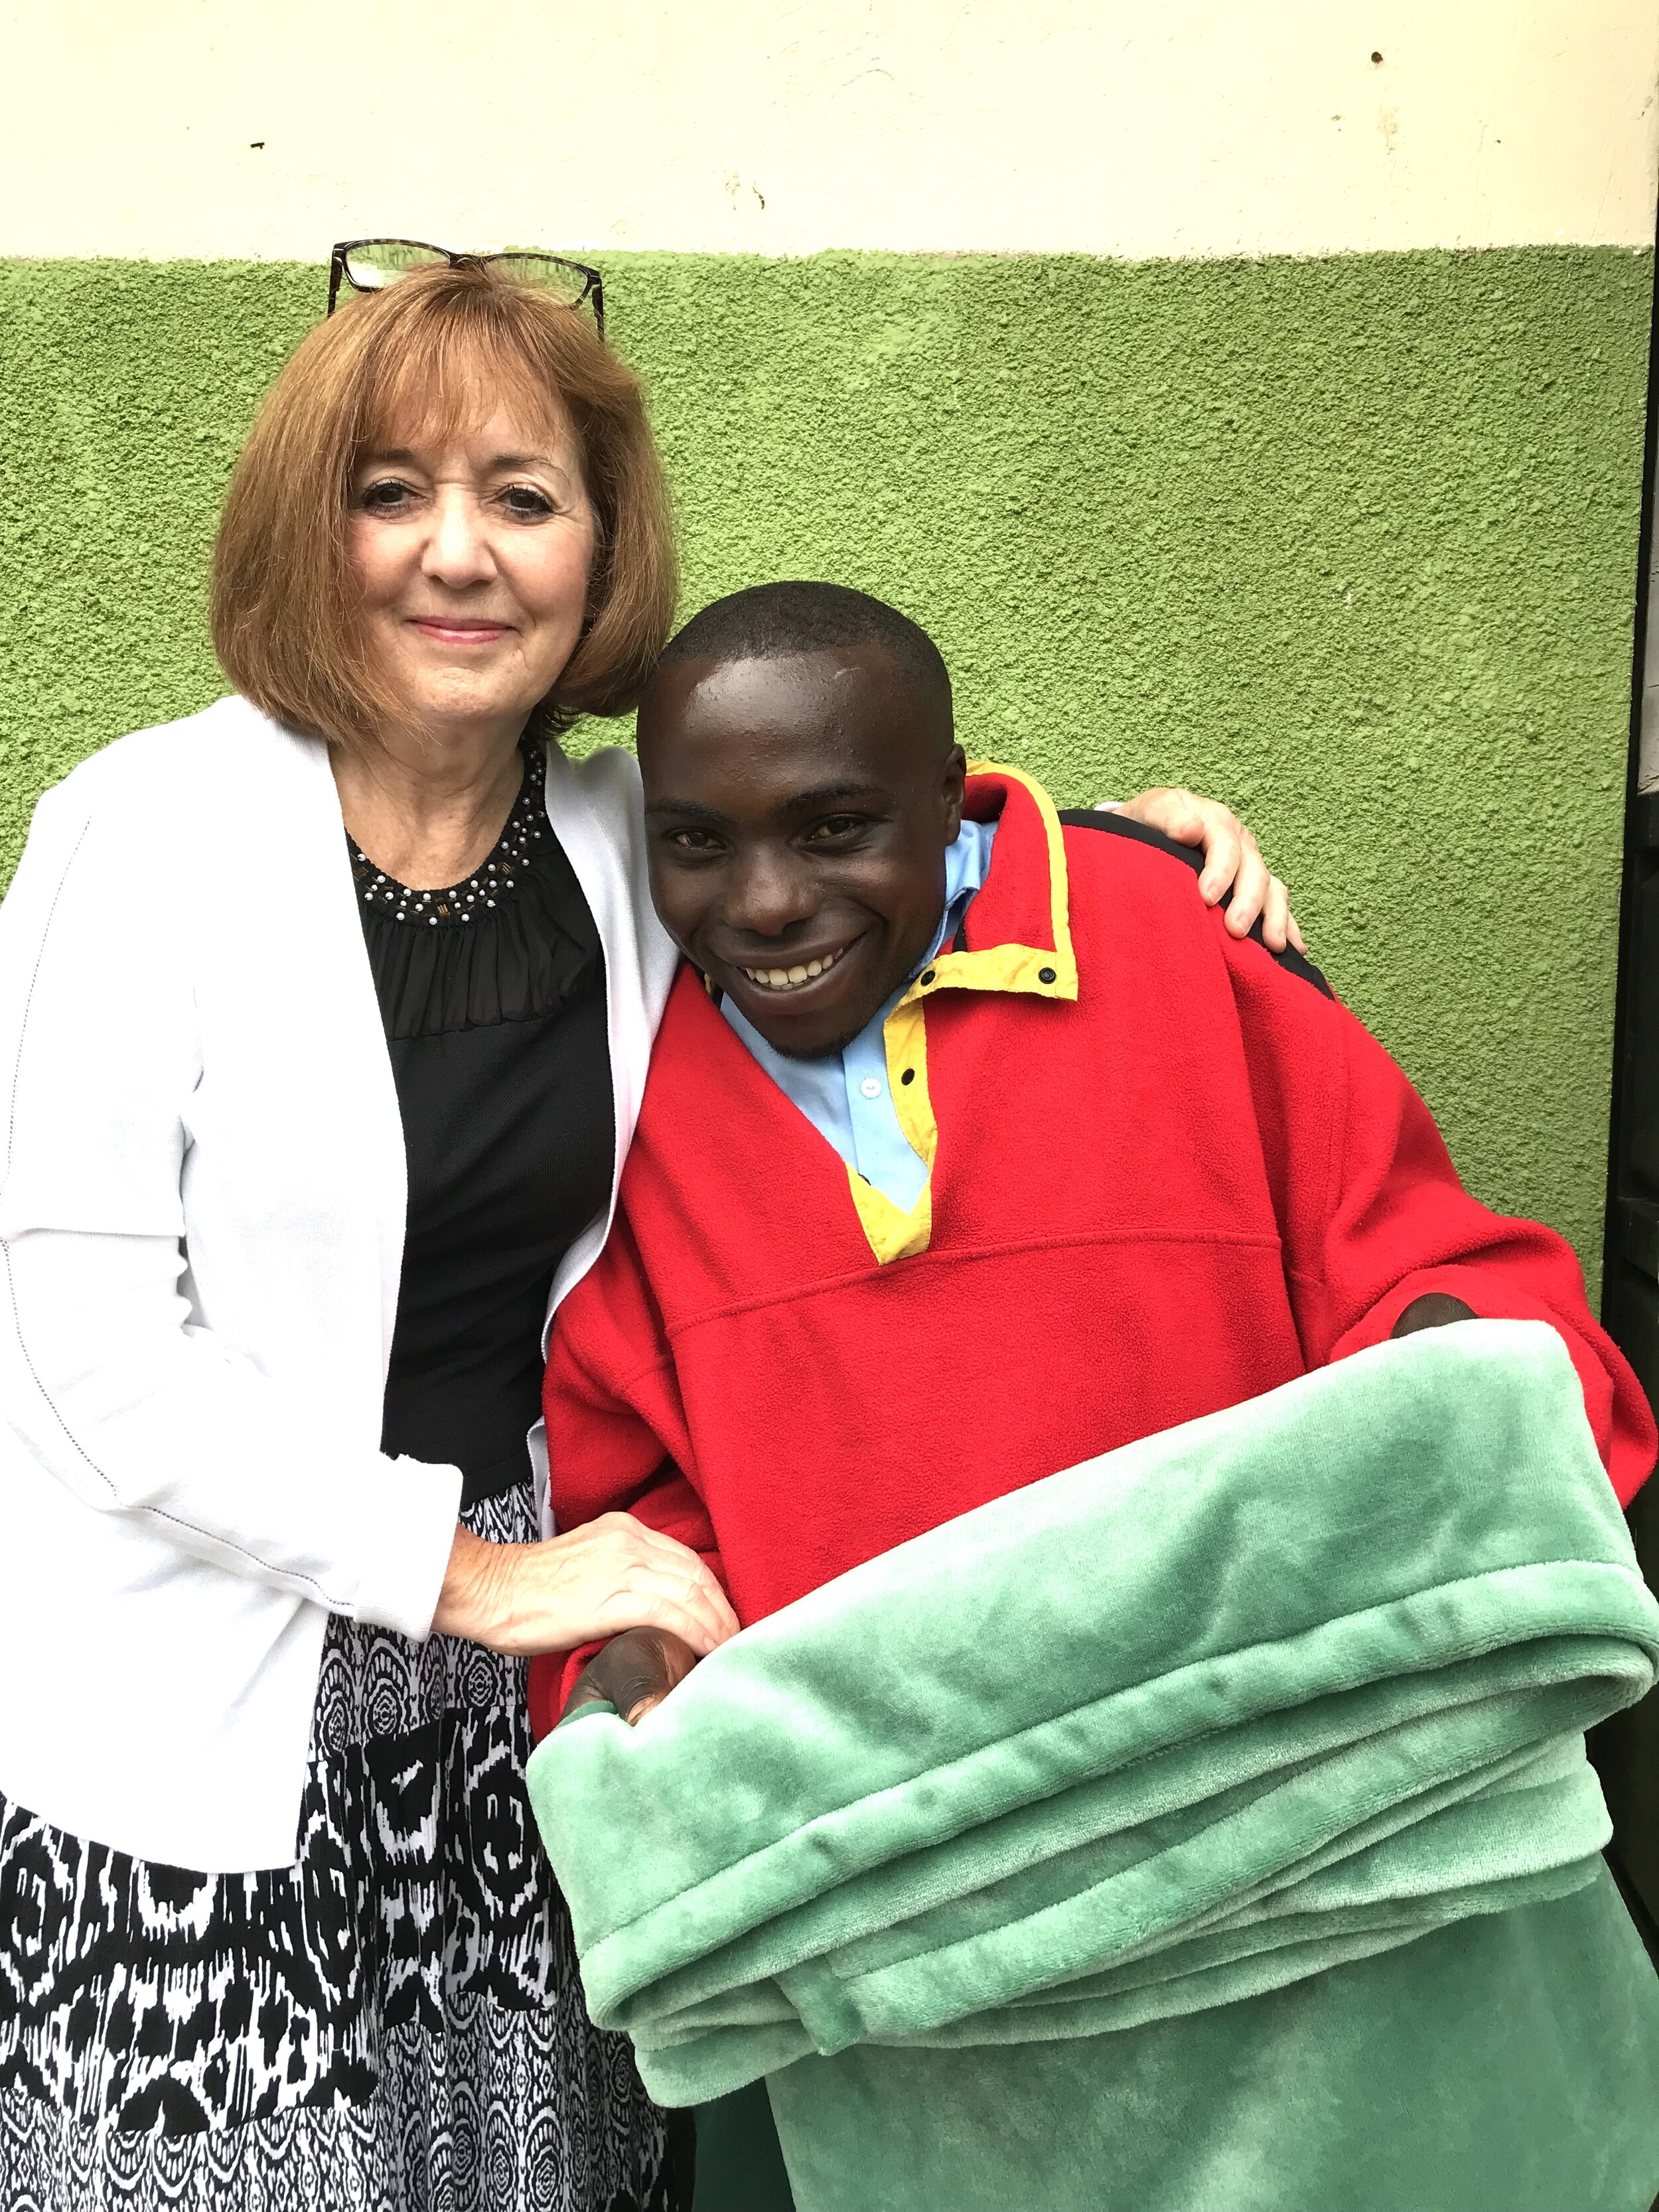 Osbert receives his gift from The Children's Therapy Corner! Osbert is in vocational school to become a cobbler.